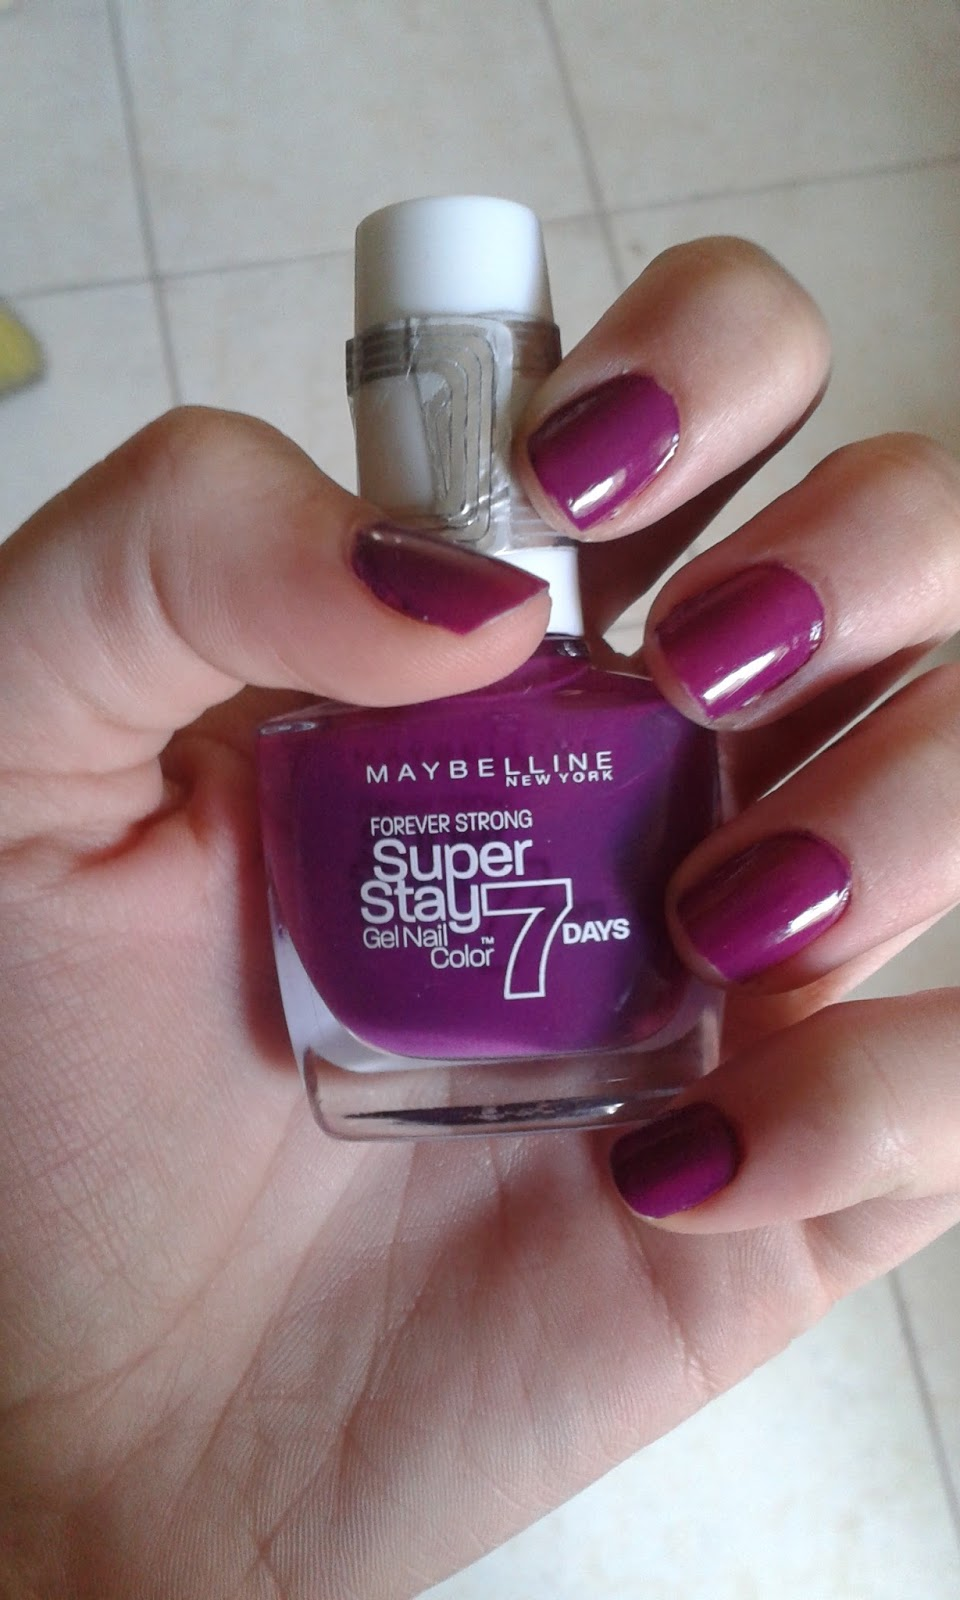 Maybelline Superstay 7 Days Gel Nail Color Review 230 Berry Stain